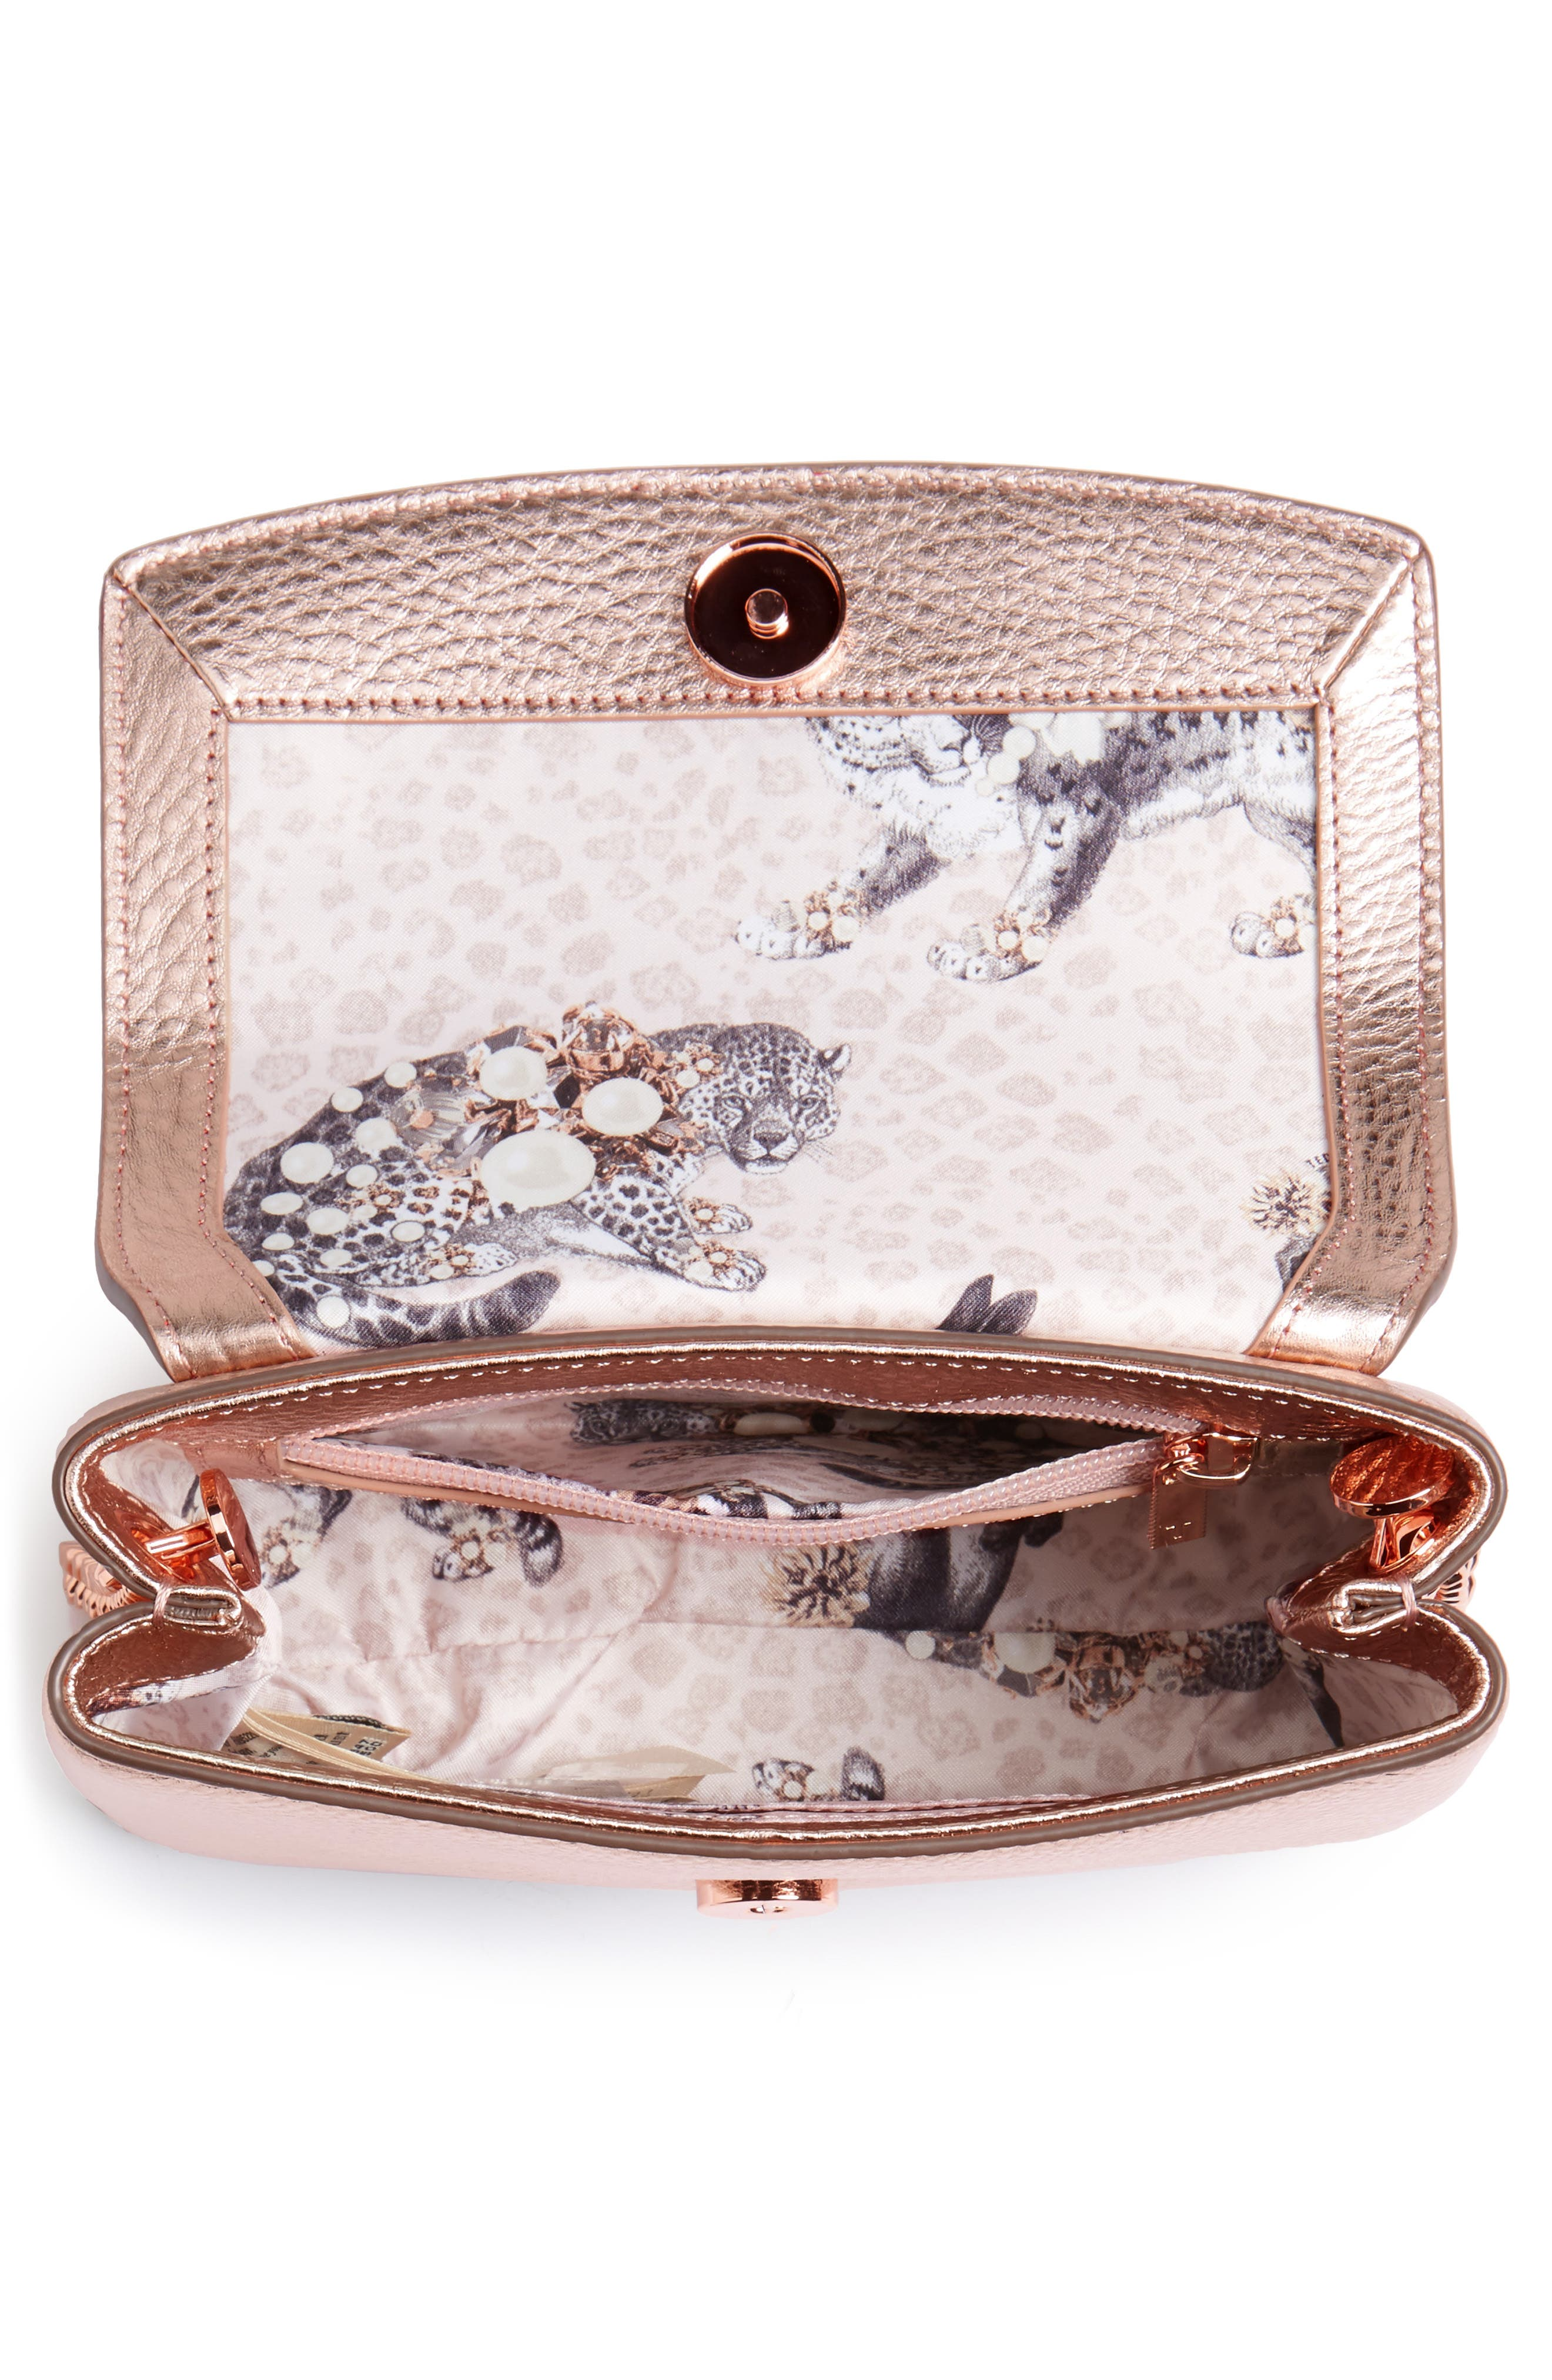 Lupiin Metallic Leather Crossbody Bag,                             Alternate thumbnail 8, color,